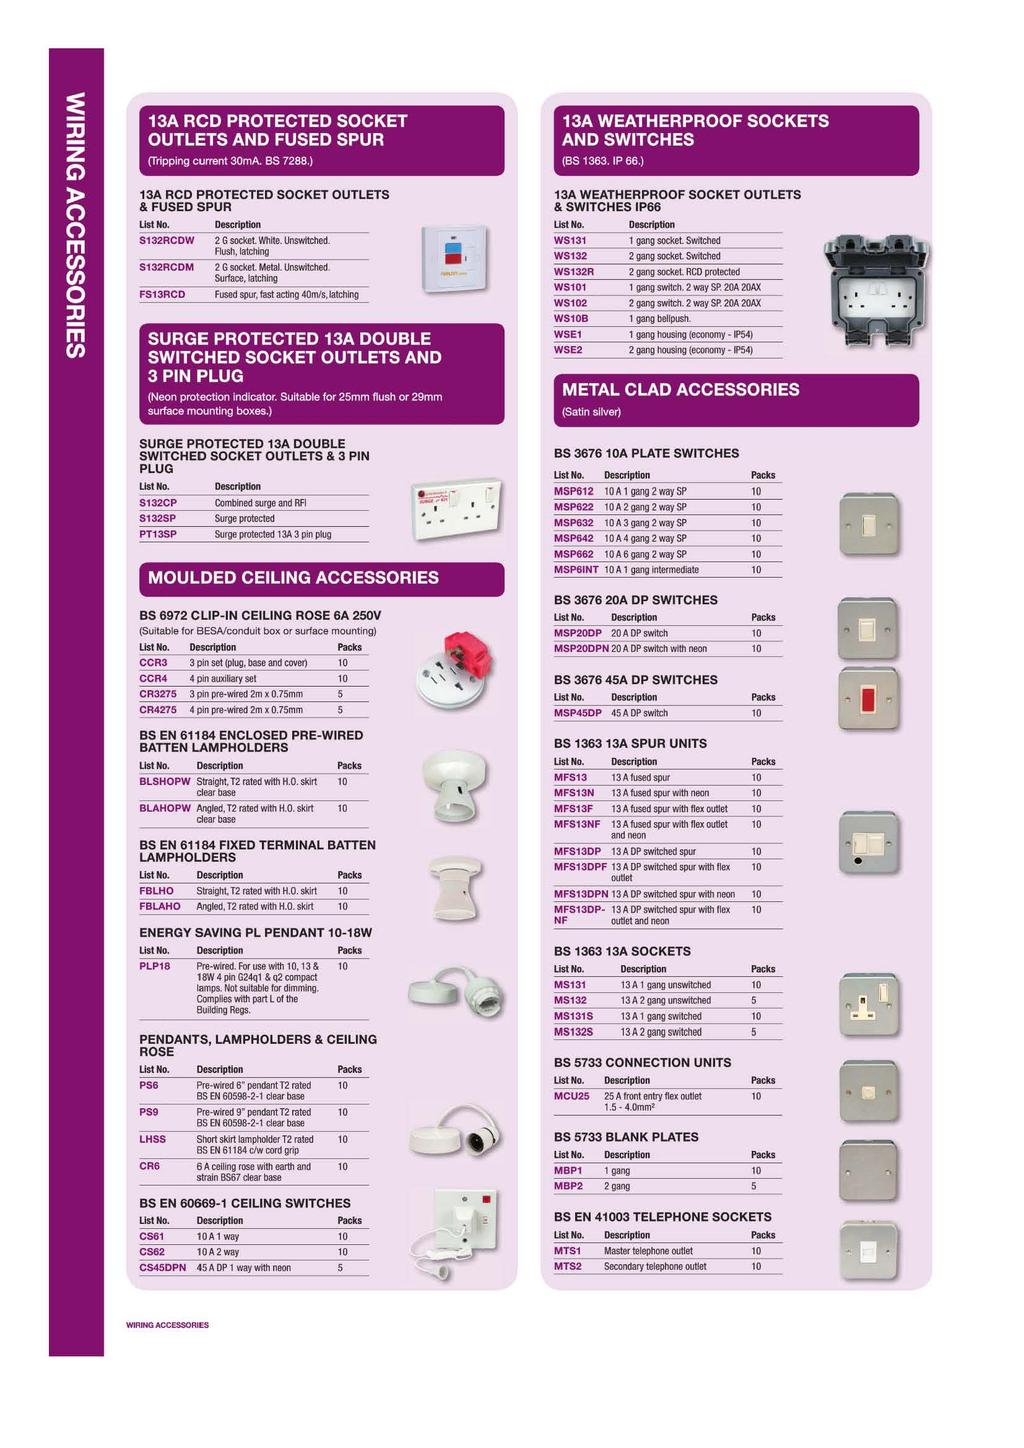 I Ell O Moulded Wiring Accessories Bs 5733 Connection Units Intermediate Switch And The Ones Either Side Are 1 Gang 2 Way Switches 13a Rcd Protected Socket Outlets Fused Spur Weatherproof Sockets Tripping Current